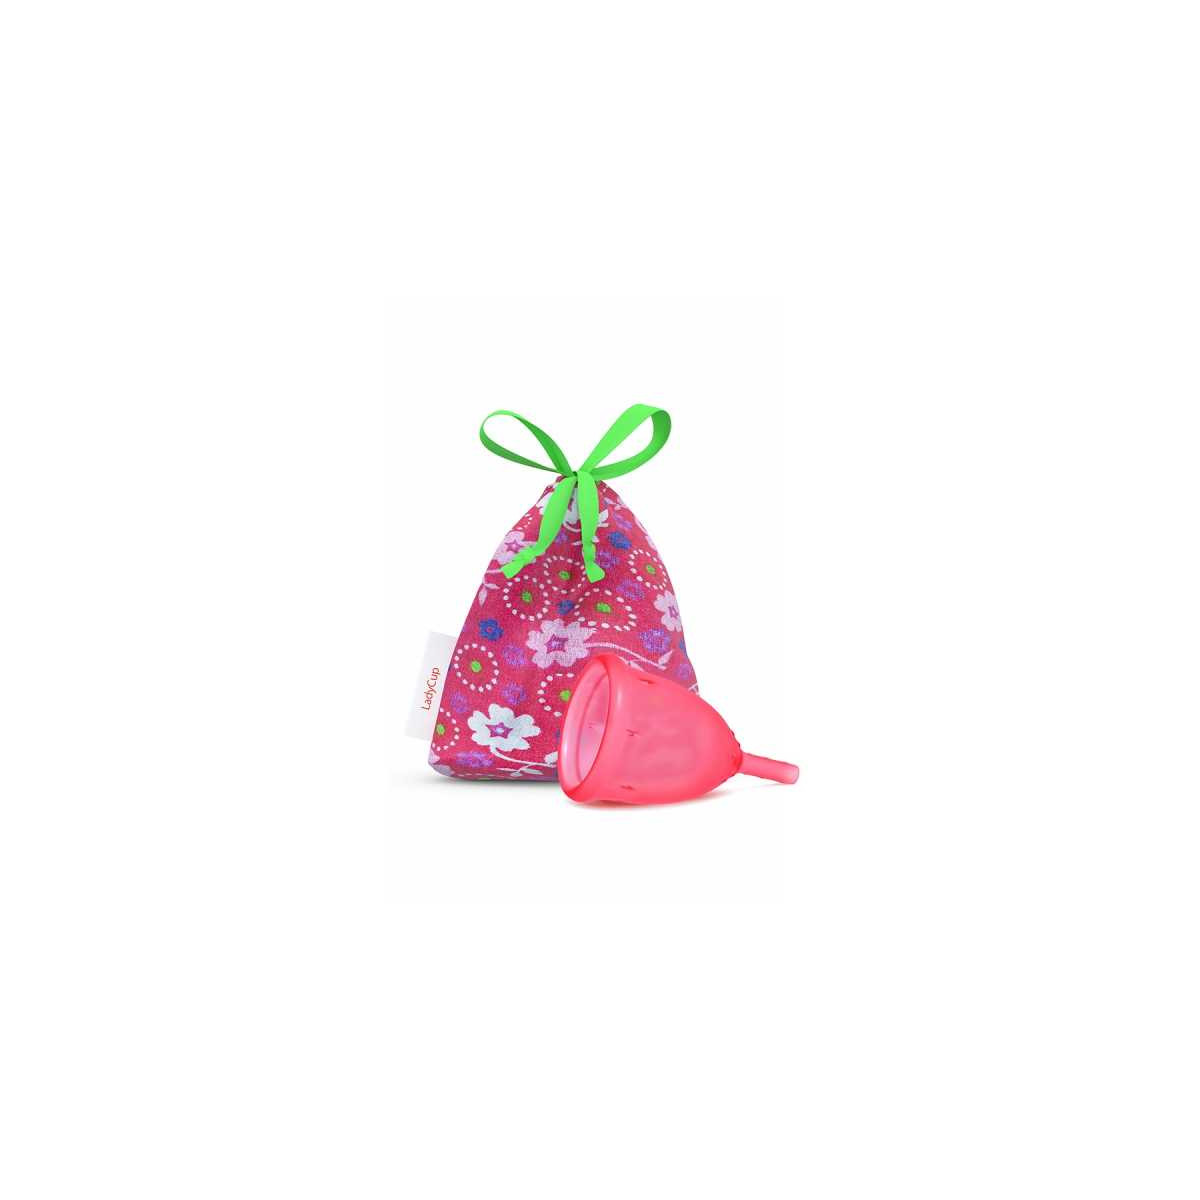 Coupe menstruelle ladycup sweet strawberry sebio - Coupe menstruelle ladycup ...